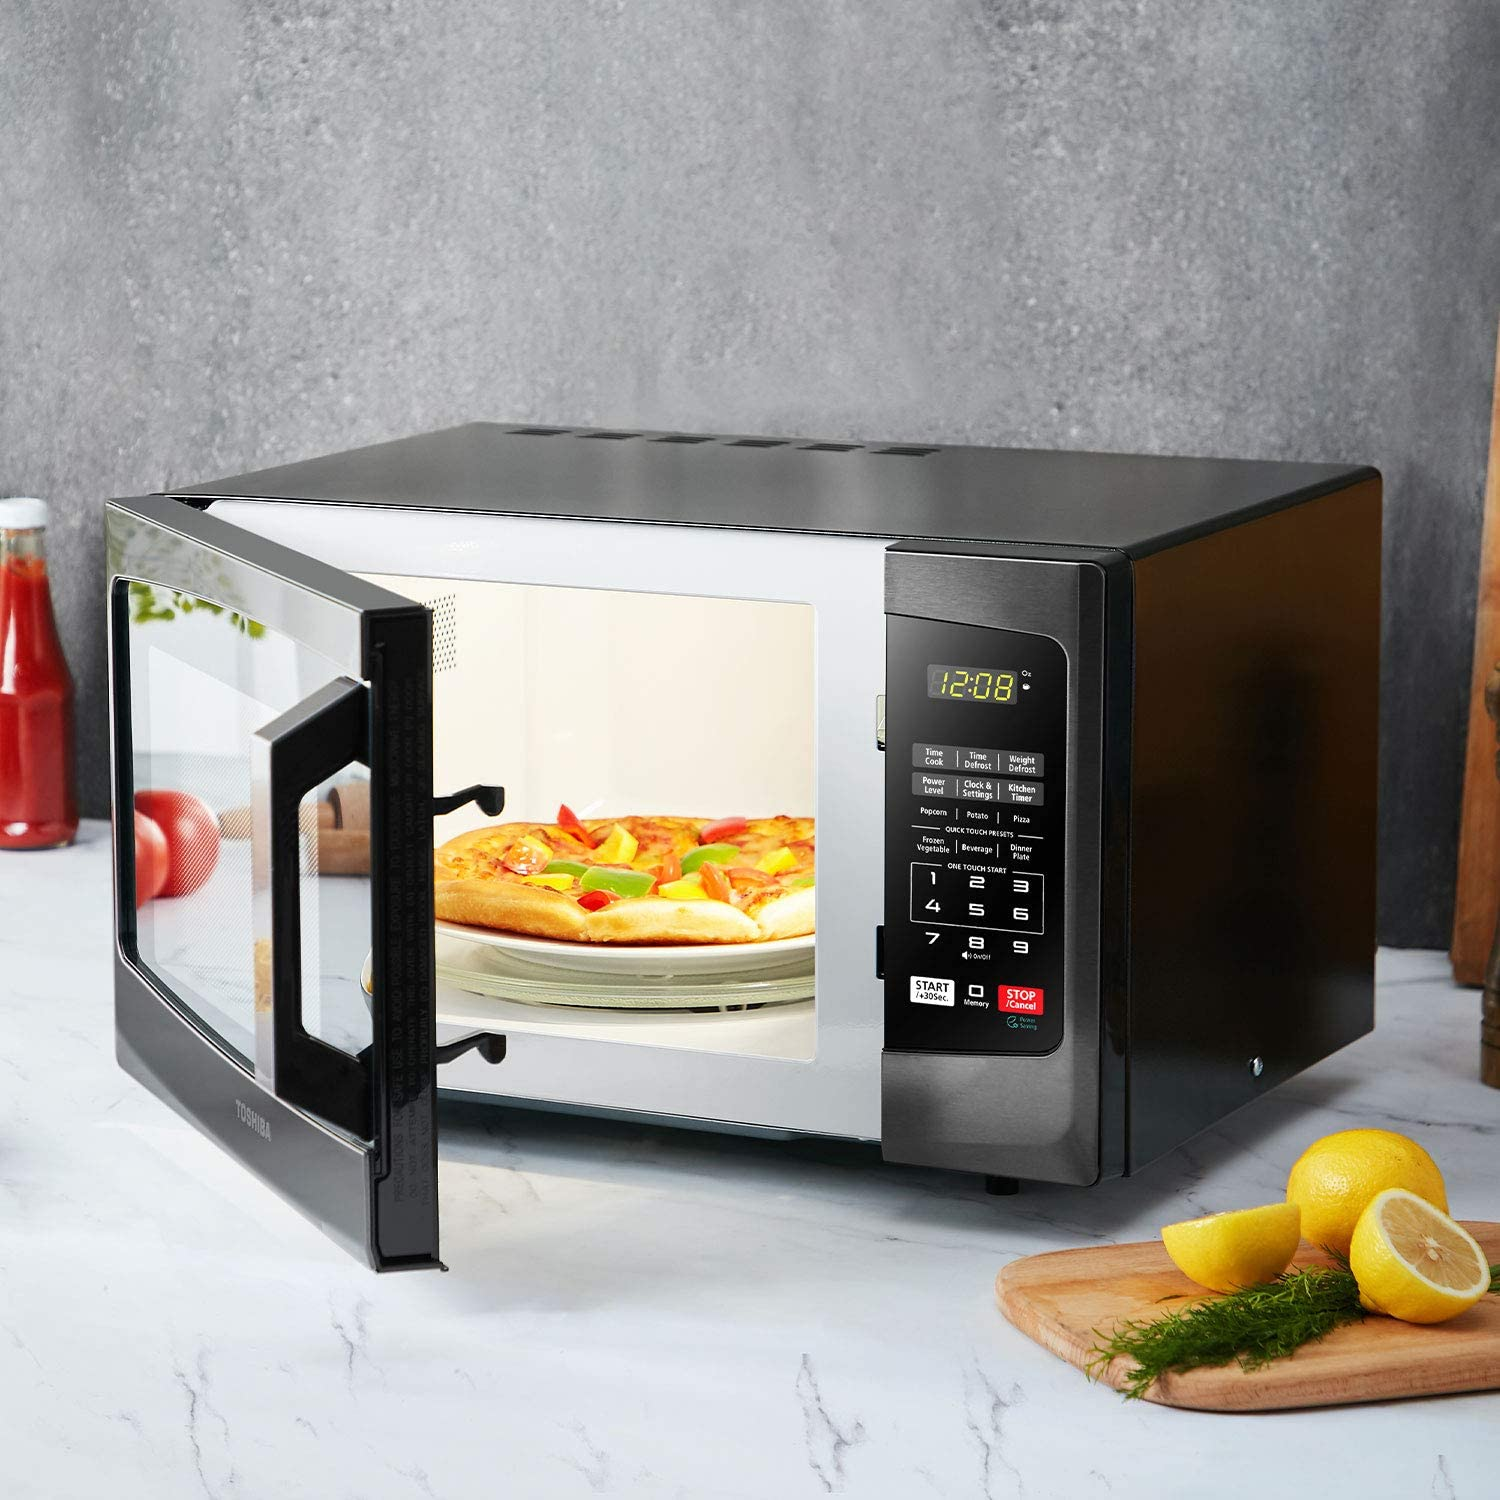 Toshiba-EM925A5A-BS-Microwave-Oven-with-Sound-On-Off-ECO-Mode-and-LED-Lighting-0.9-Cu-ft-900W-Black-Stainless-Steel